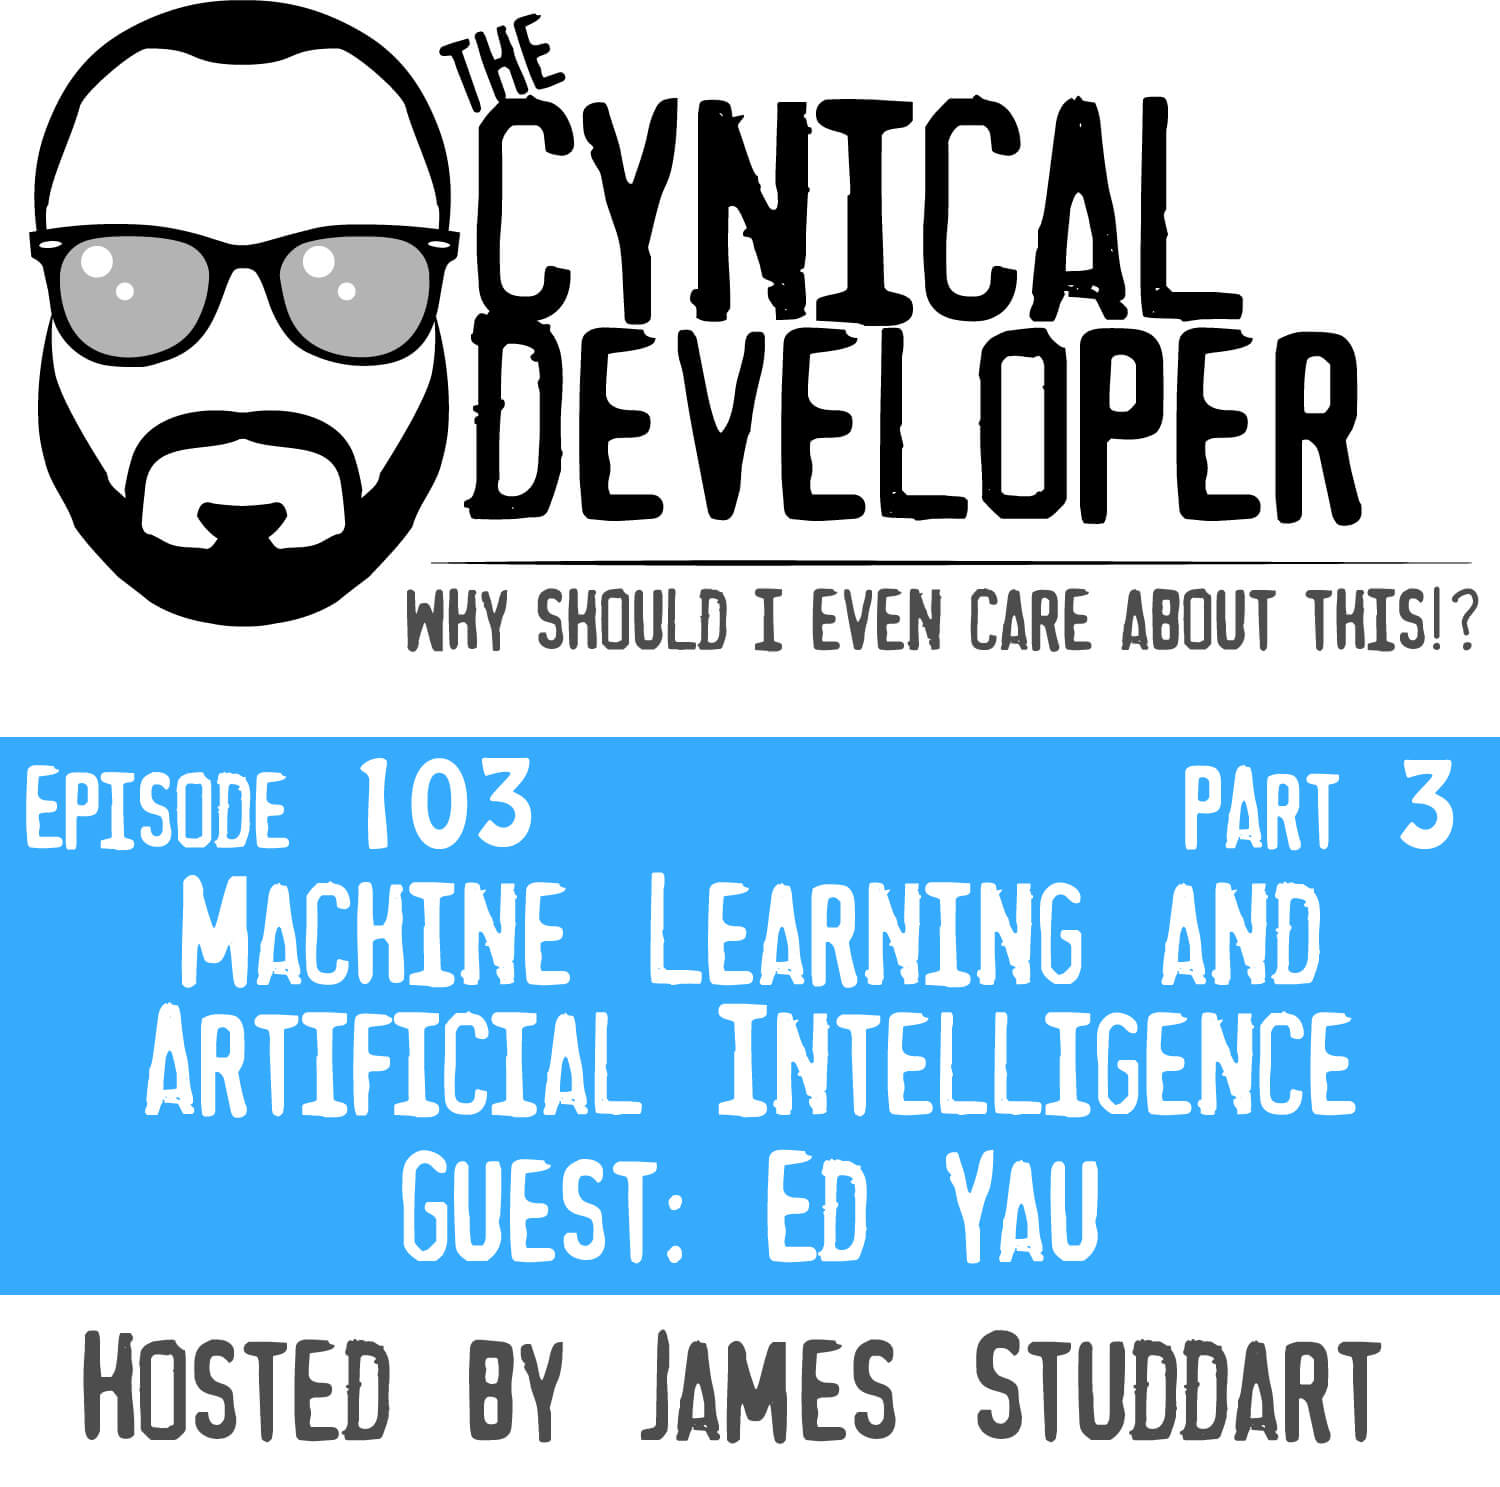 Episode 103 - Machine Learning and Artificial Intelligence (Part 3)